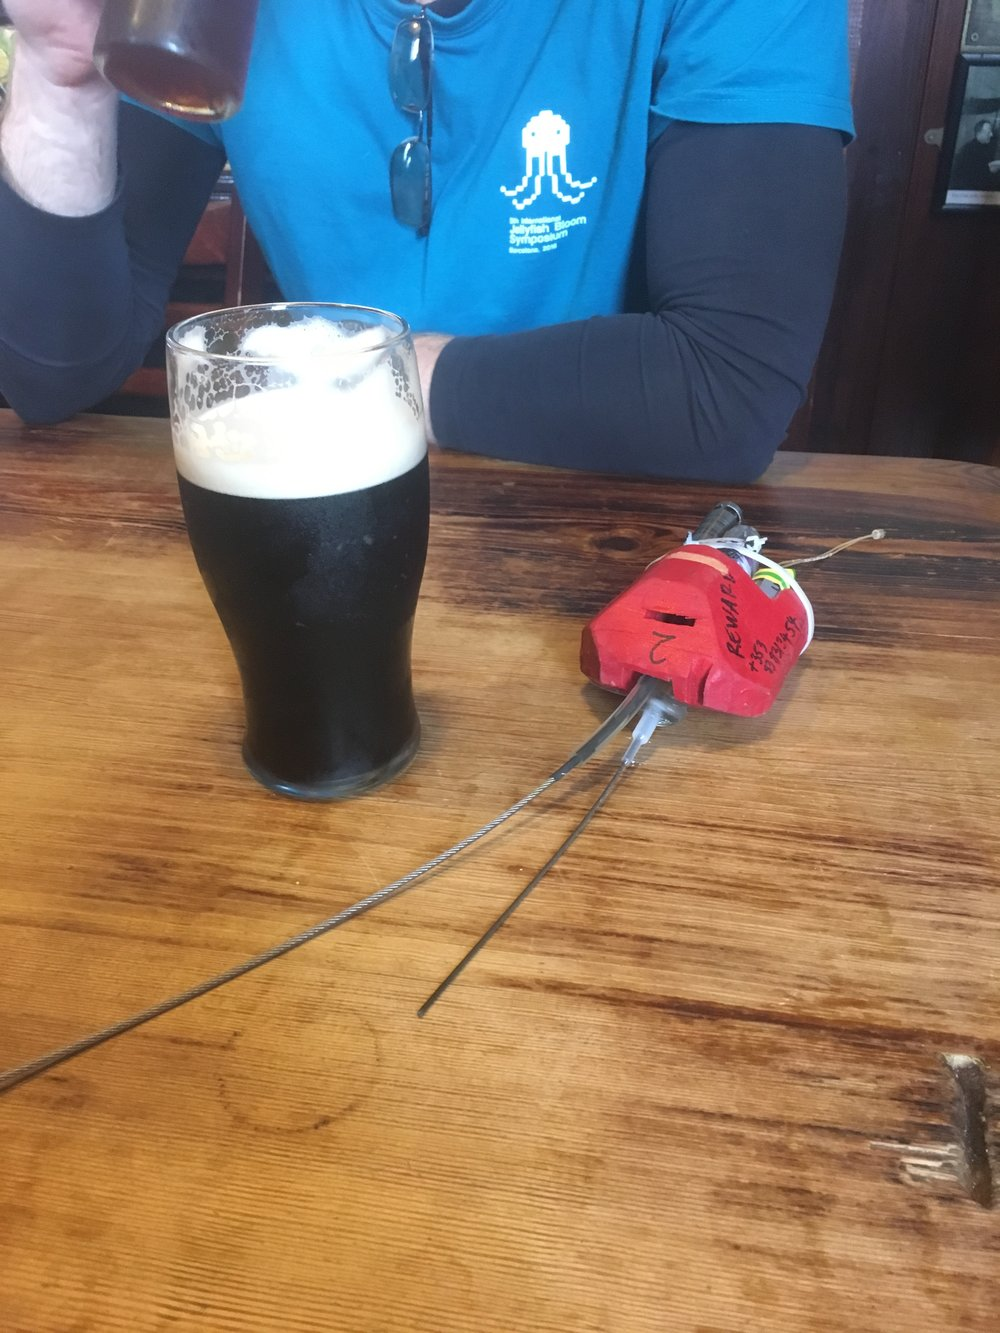 Once the package was recovered, there was only one thing to do: grab a pint at the local pub.